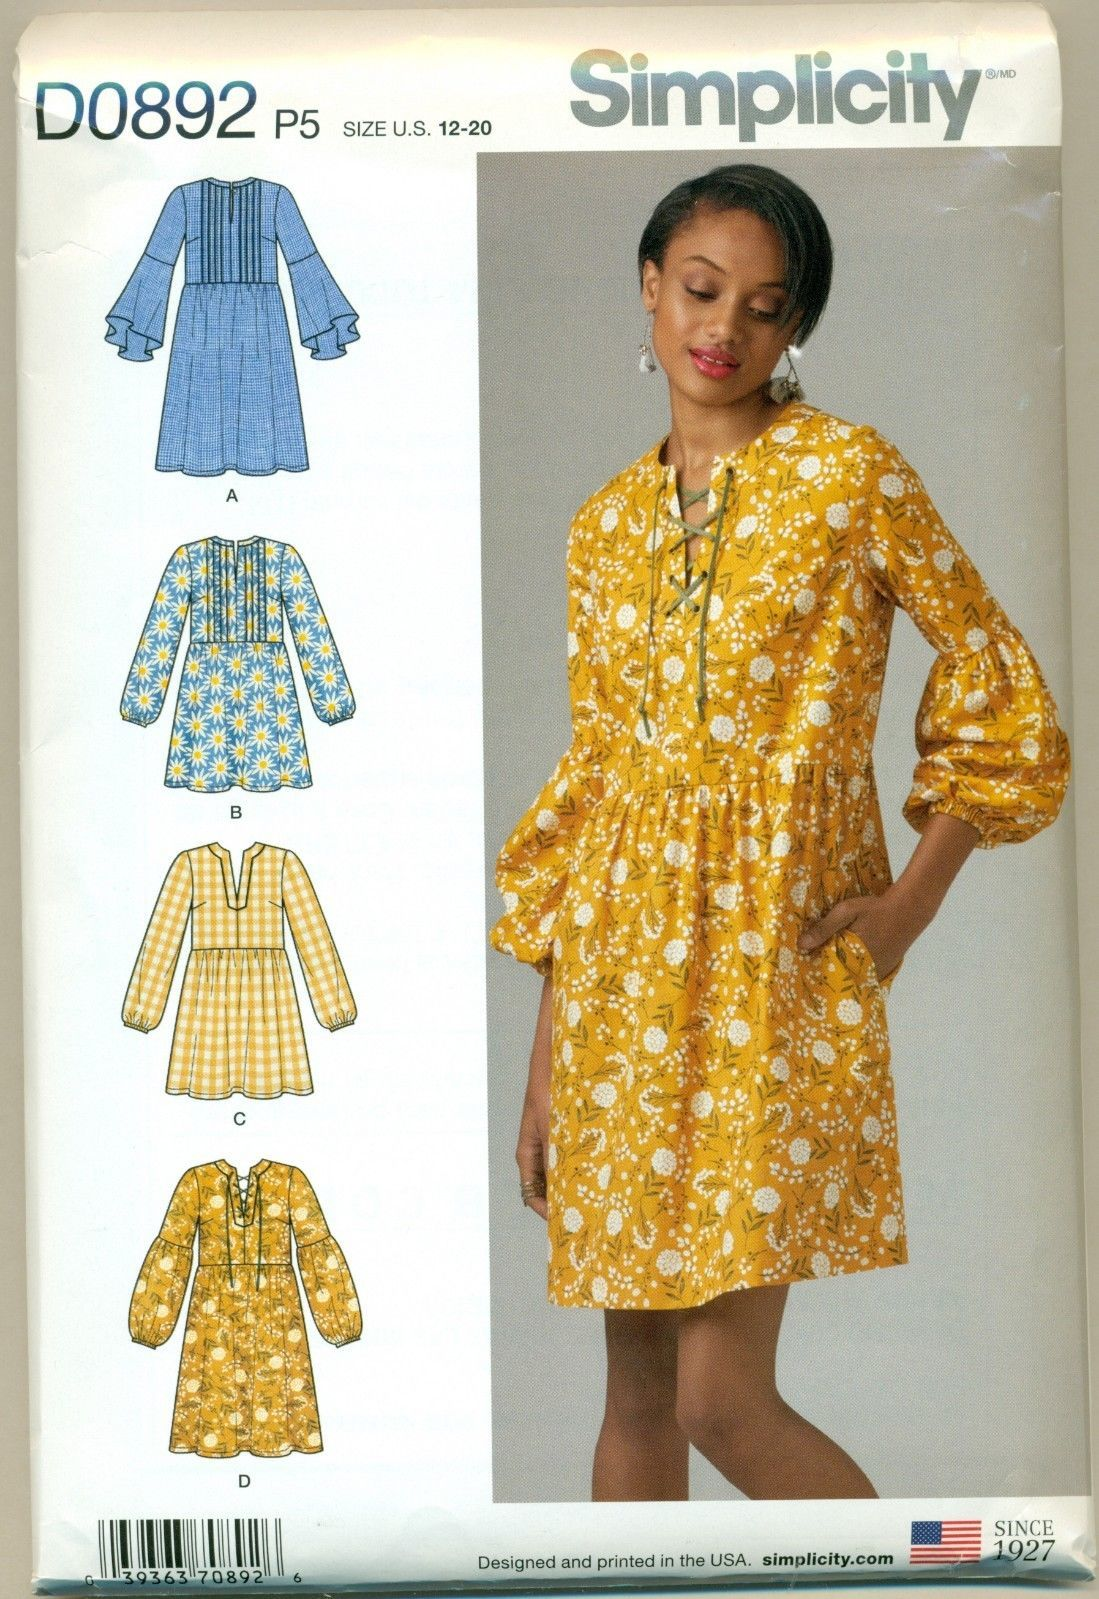 36a764daf9 Simplicity D0892 Misses  Dress or Tunic Size P5 12 - 20 New 2018 Uncut  Pattern